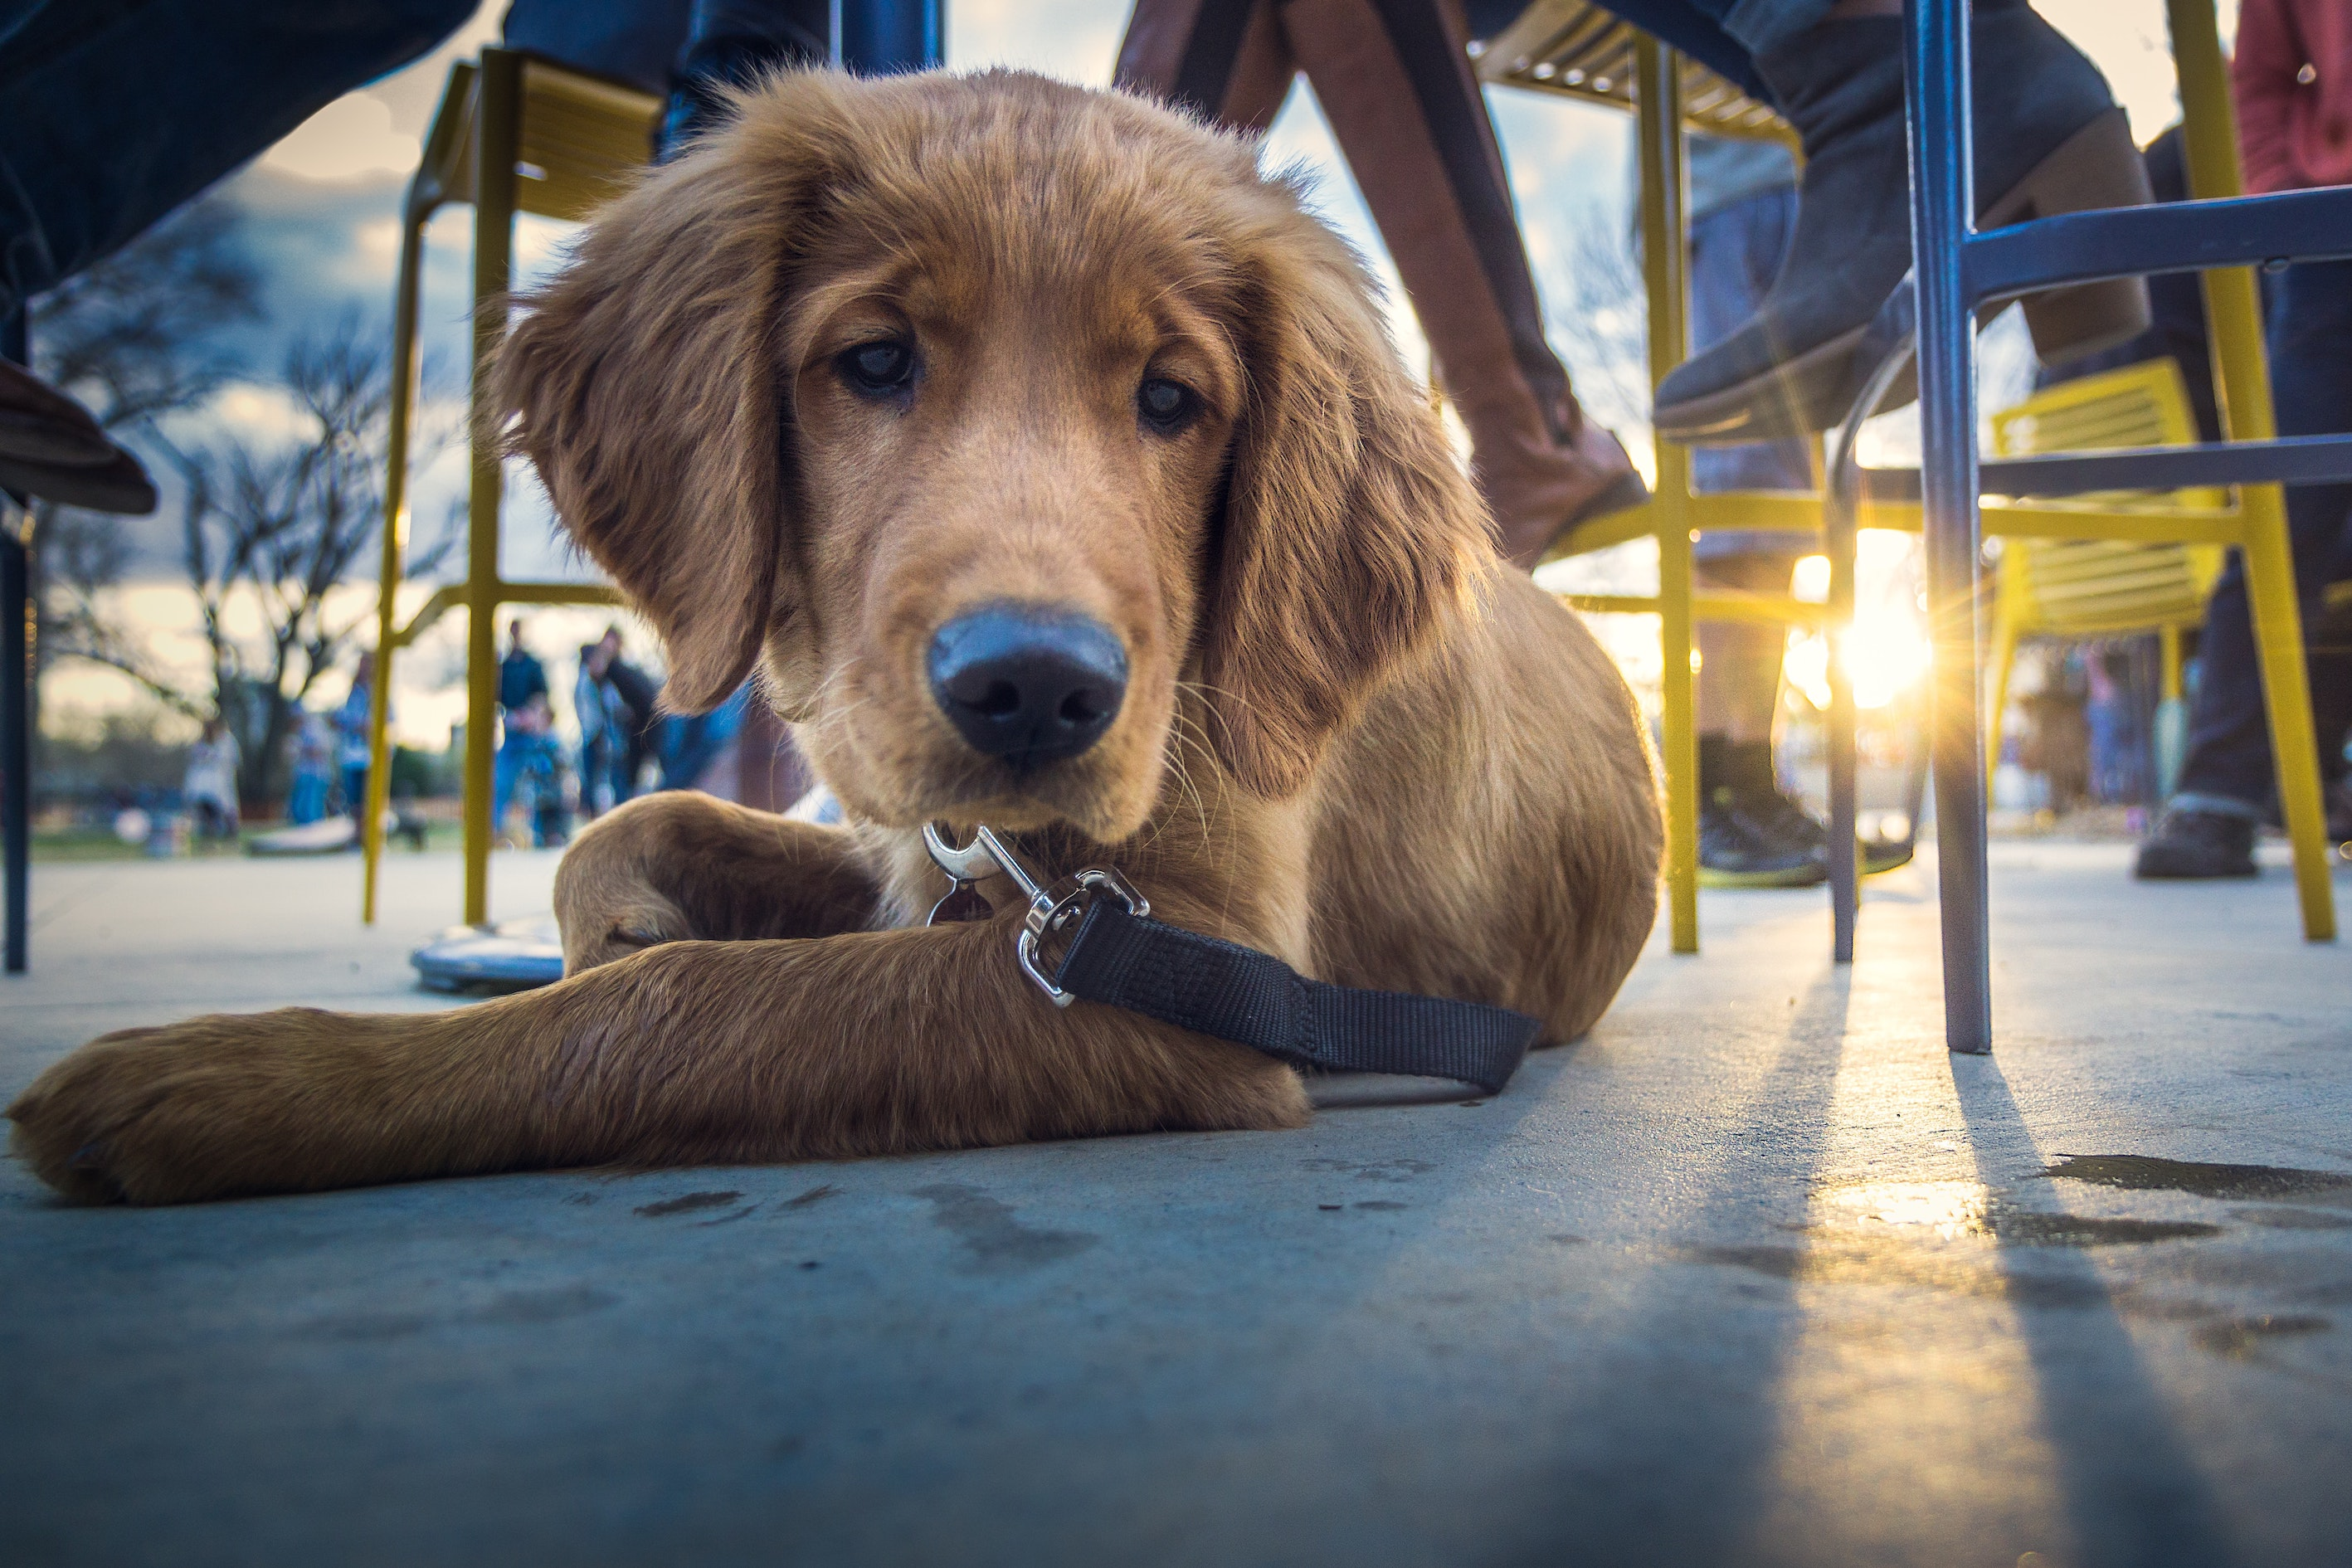 Should Dogs Be Allowed In Cafes?